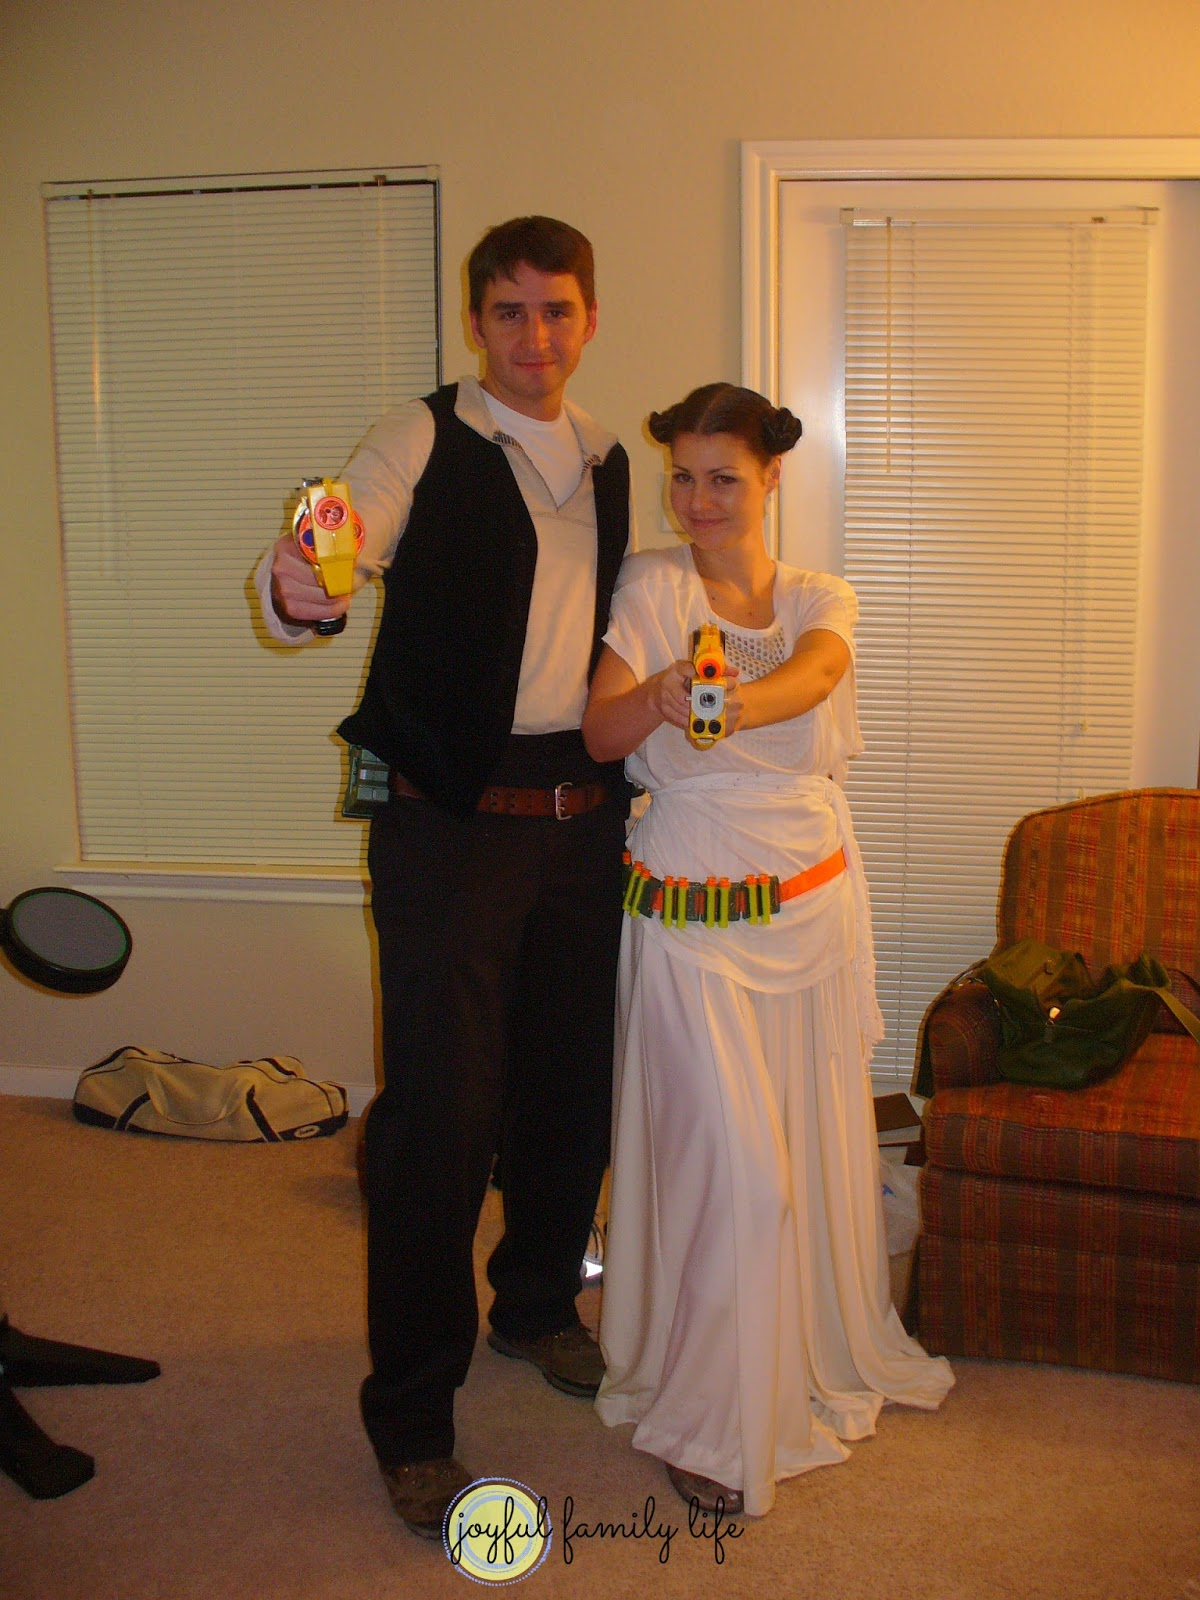 8 years of halloween couples costumes - joyful family life